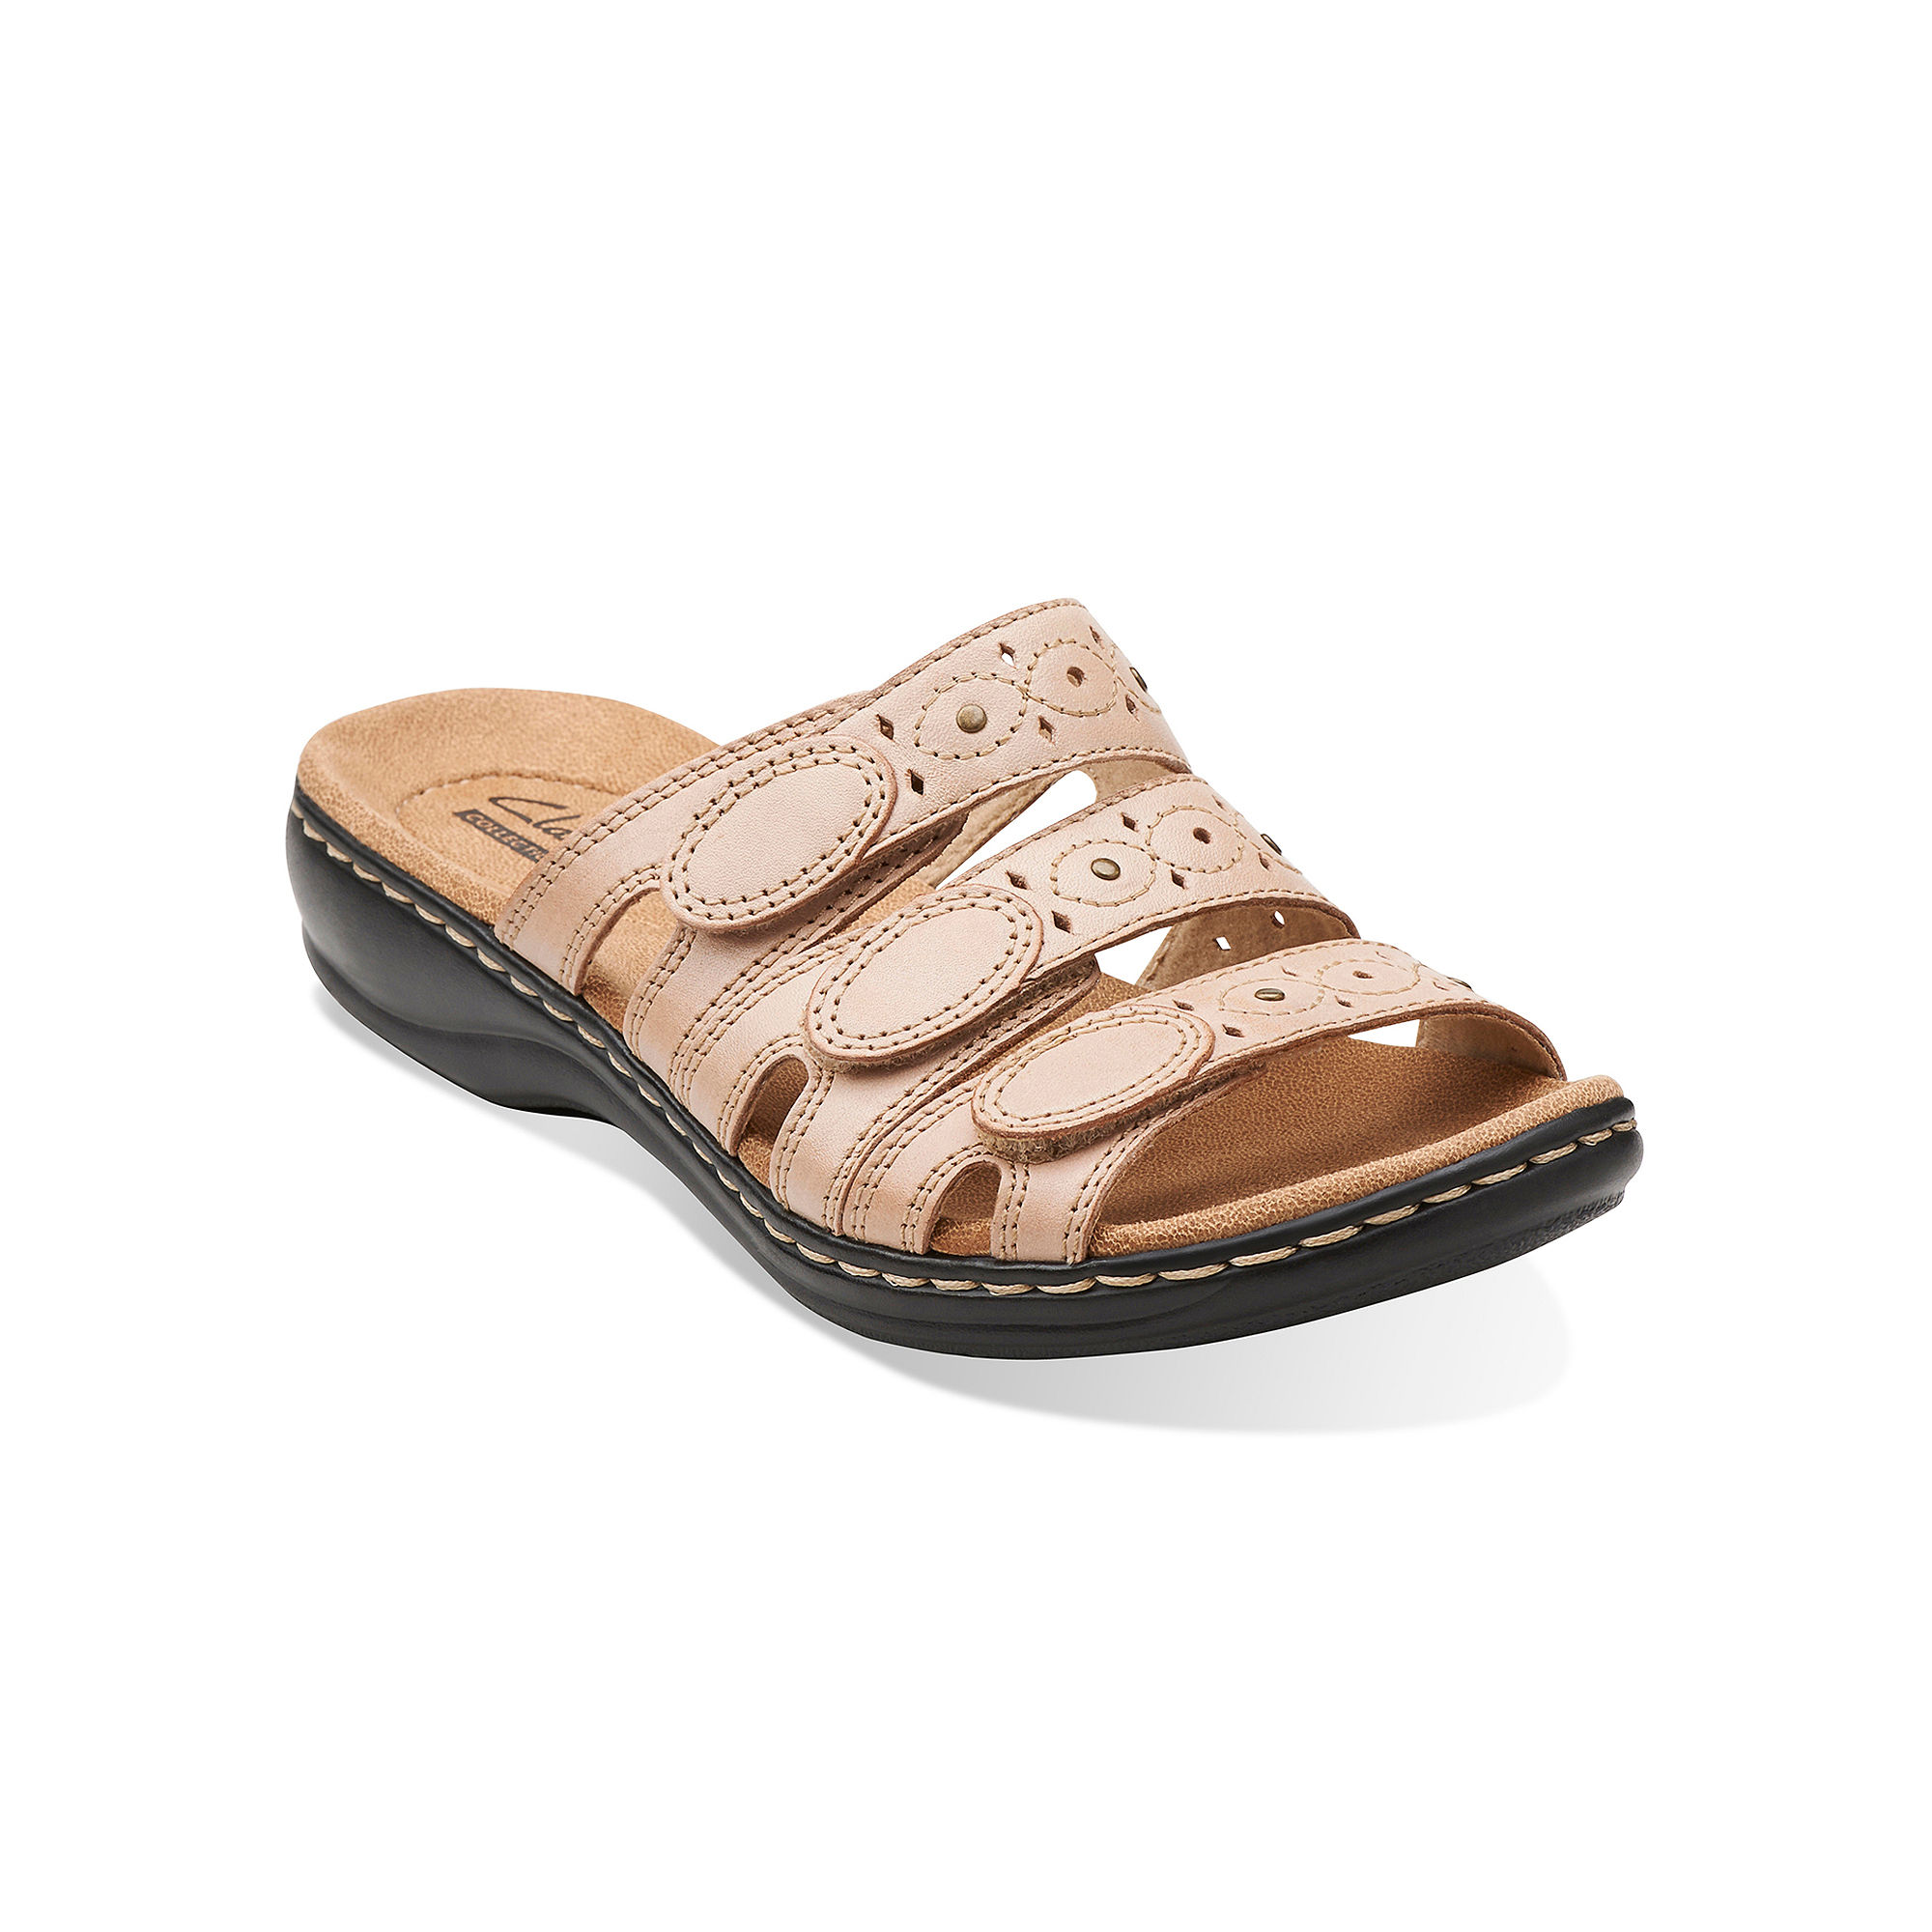 85d358e4f36ea ... UPC 889303109791 product image for Clarks Leisa Cacti Womens Open-Toe  Leather Sandals